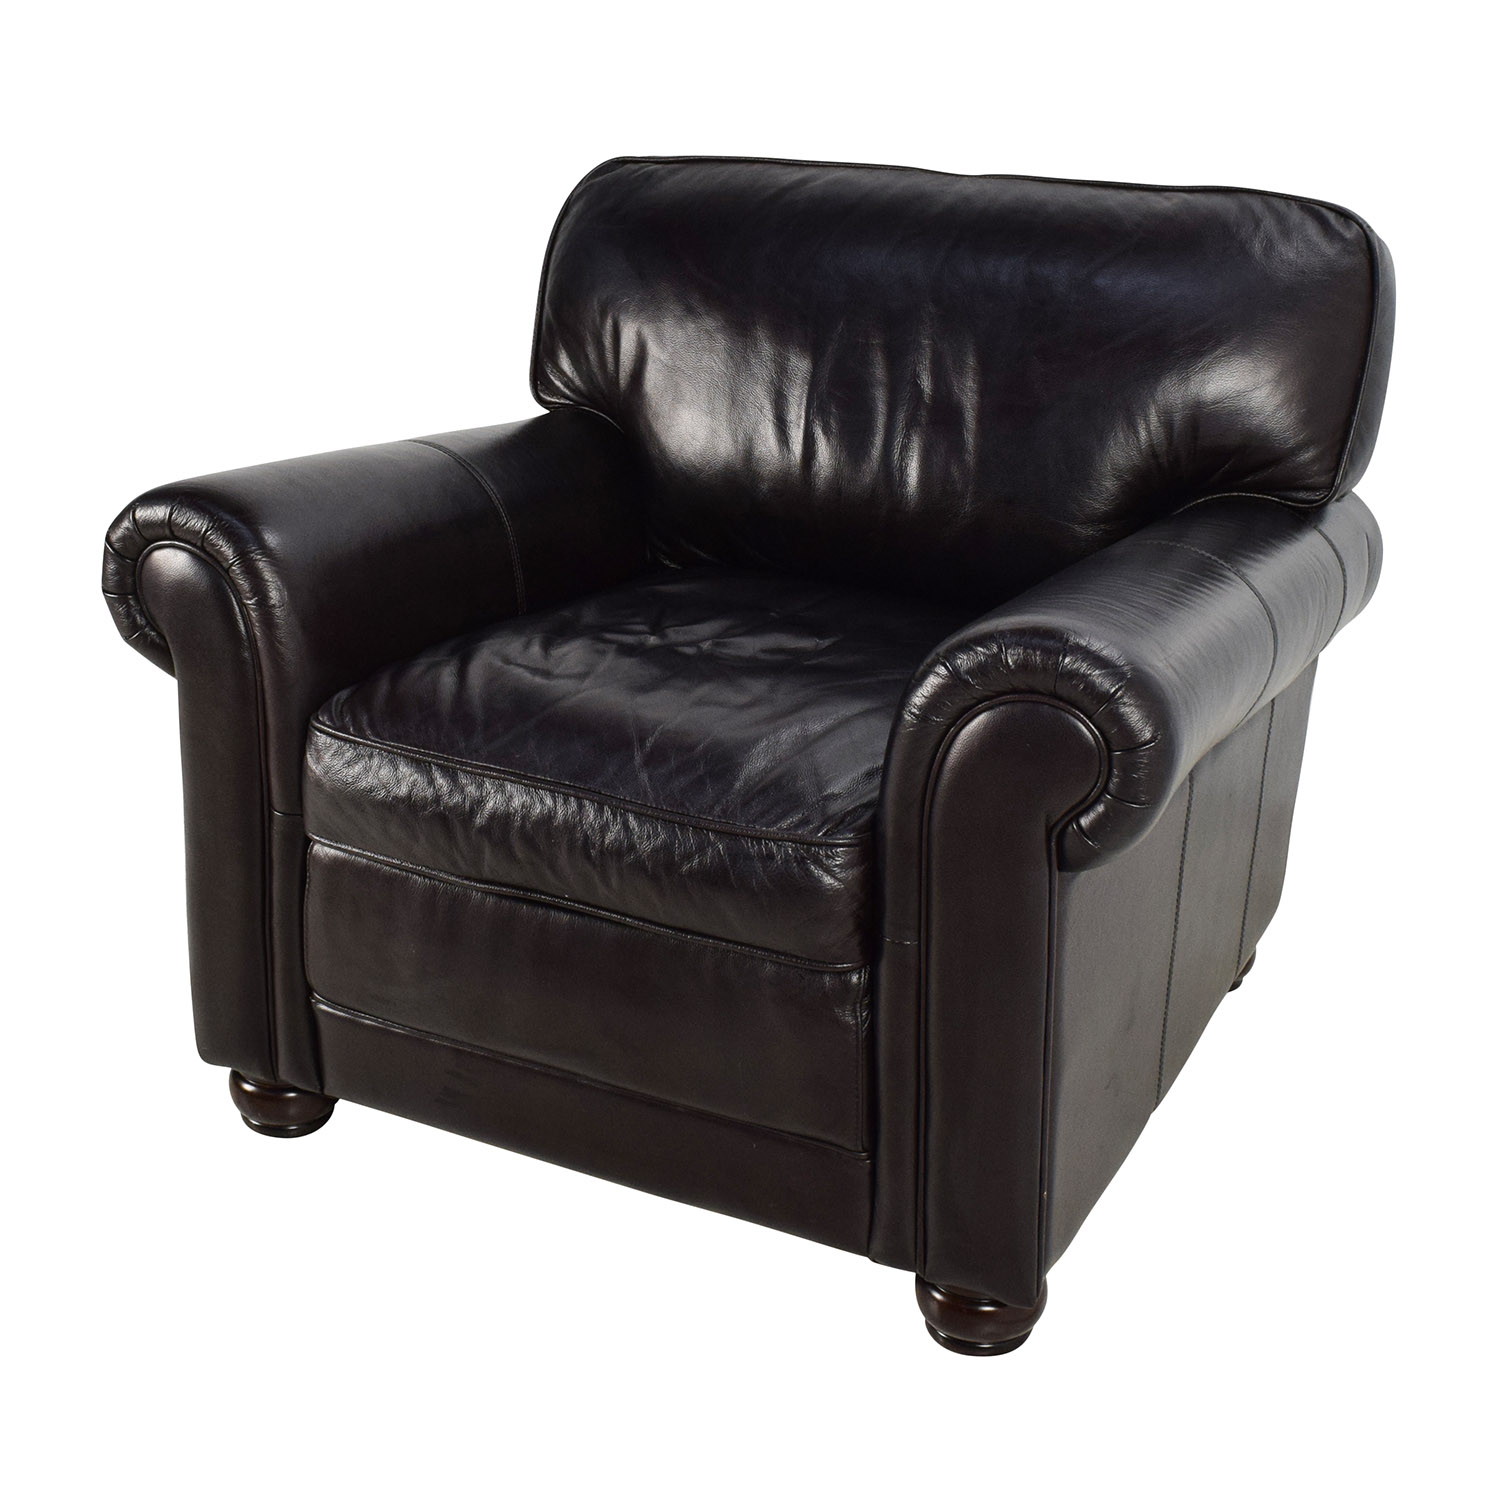 74 Off Bobs Furniture Bob 39 S Furniture Leather Dark Brown Chair Chairs